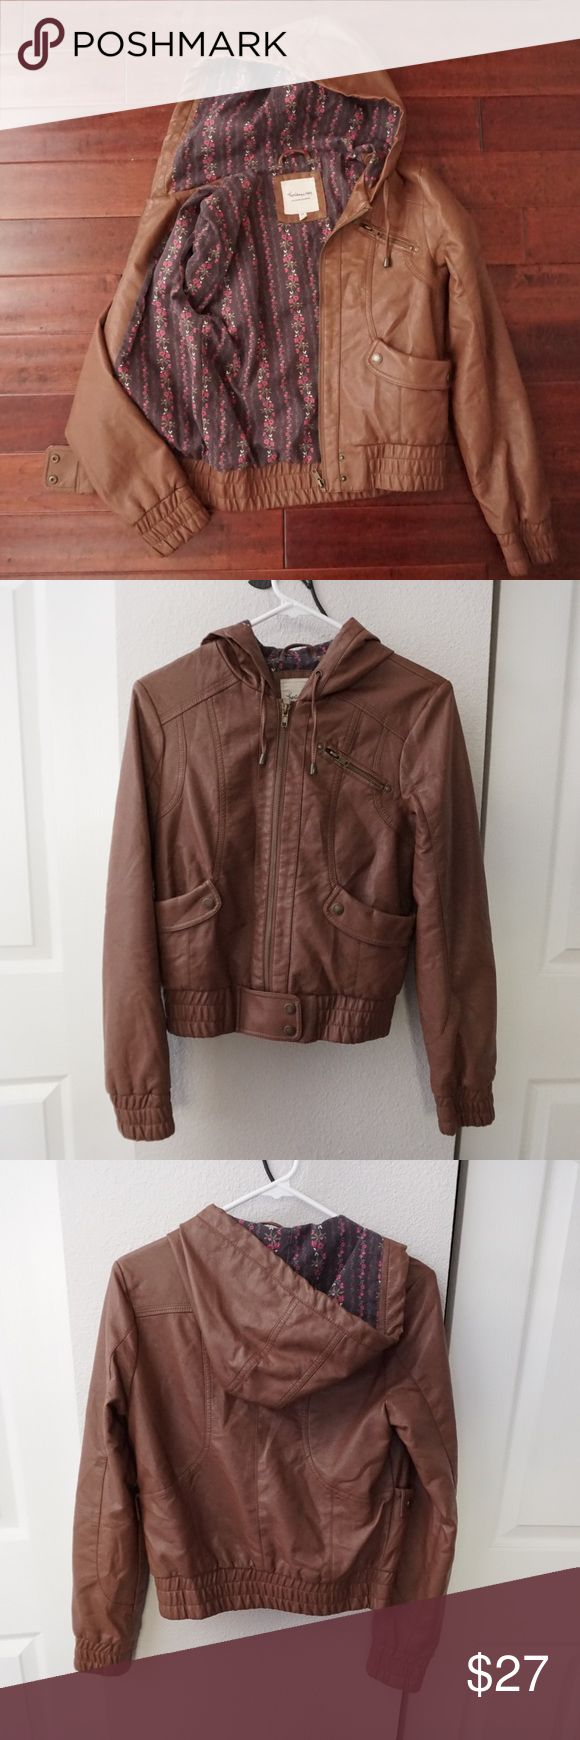 Heritage 1981 Brown Leather Look Jacket Measurements taken laying down flat. Size SP. Arm about 23 1/2 in long  Chest about 34 in around Length from shoulder about 21 1/2 in long Good condition. Wear underneath right armpit as shown in pictures. Brown leather look. Zip pocket at the chest. Two pockets on from side. Buttons at bottom. Beautiful floral print interior. Bundle with more items in my closet and save! Heritage 1981 Jackets & Coats